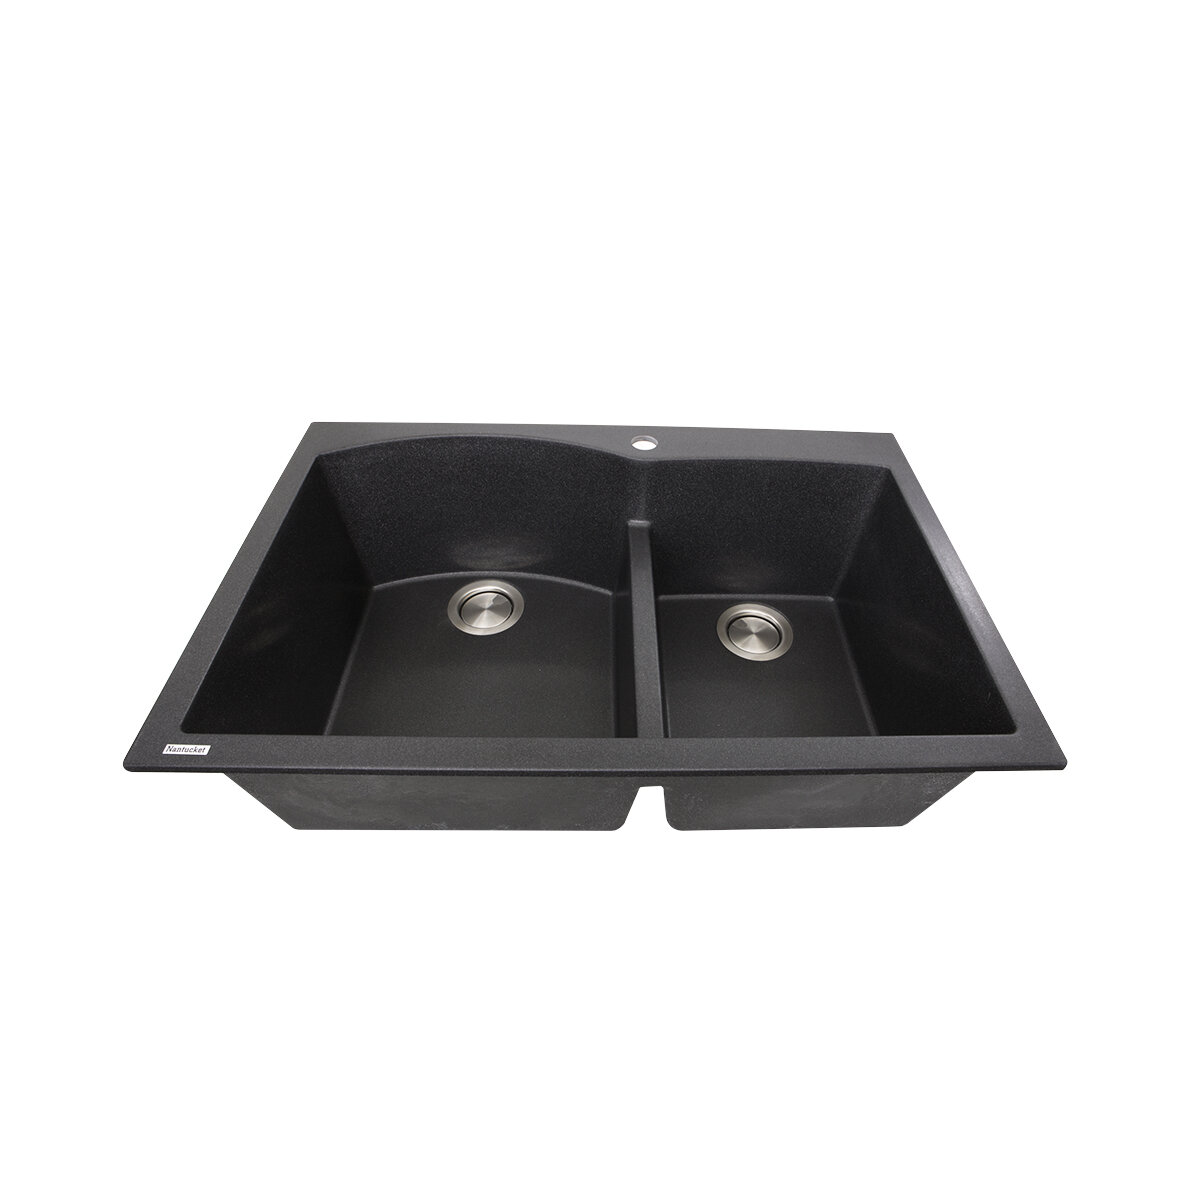 Plymouth 33 L X 22 W Double Basin Drop In Kitchen Sink Reviews